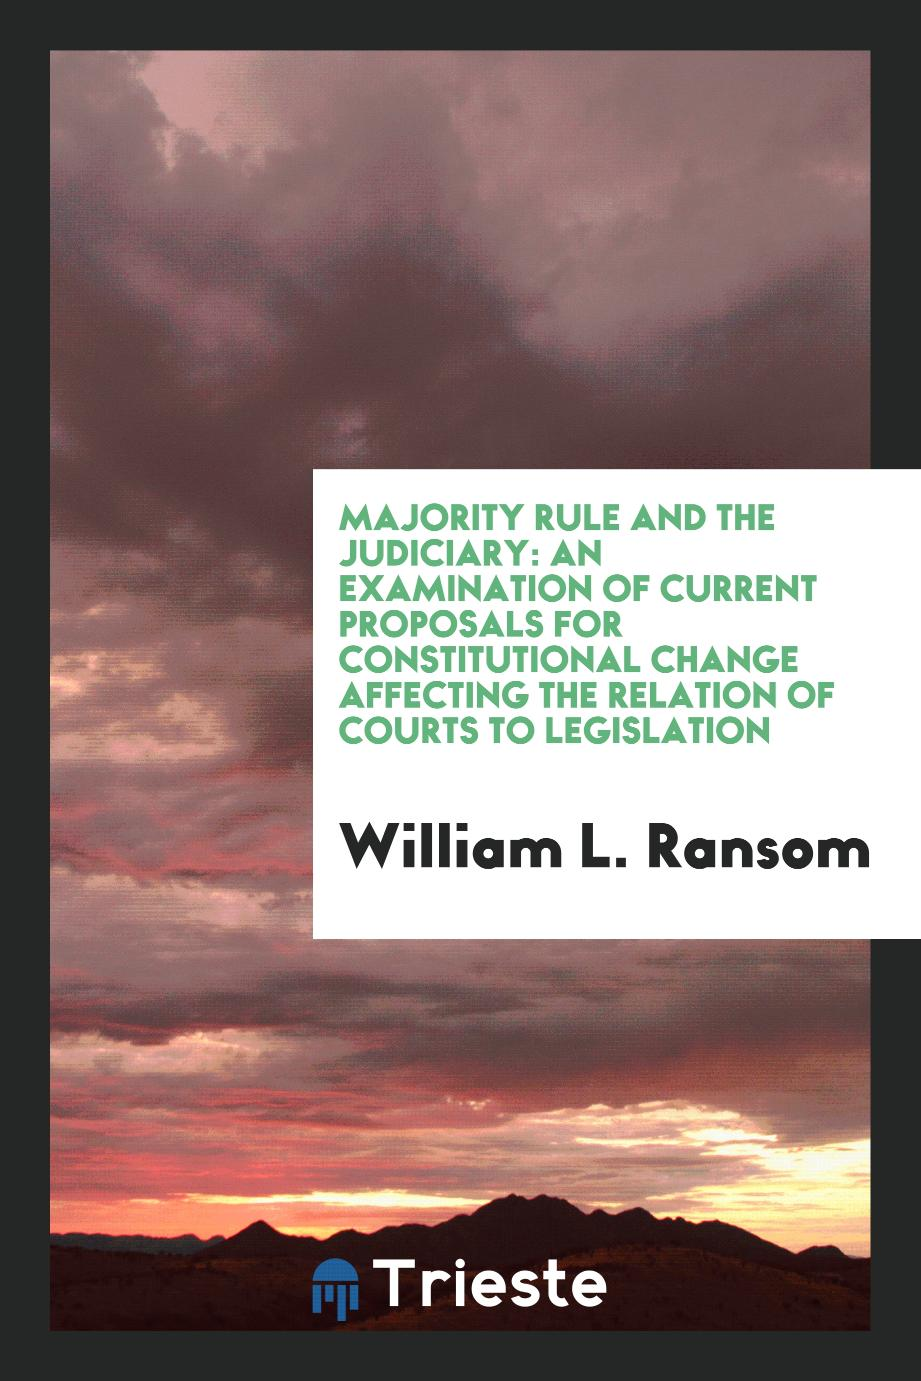 Majority Rule and the Judiciary: An Examination of Current Proposals for Constitutional Change Affecting the Relation of Courts to Legislation